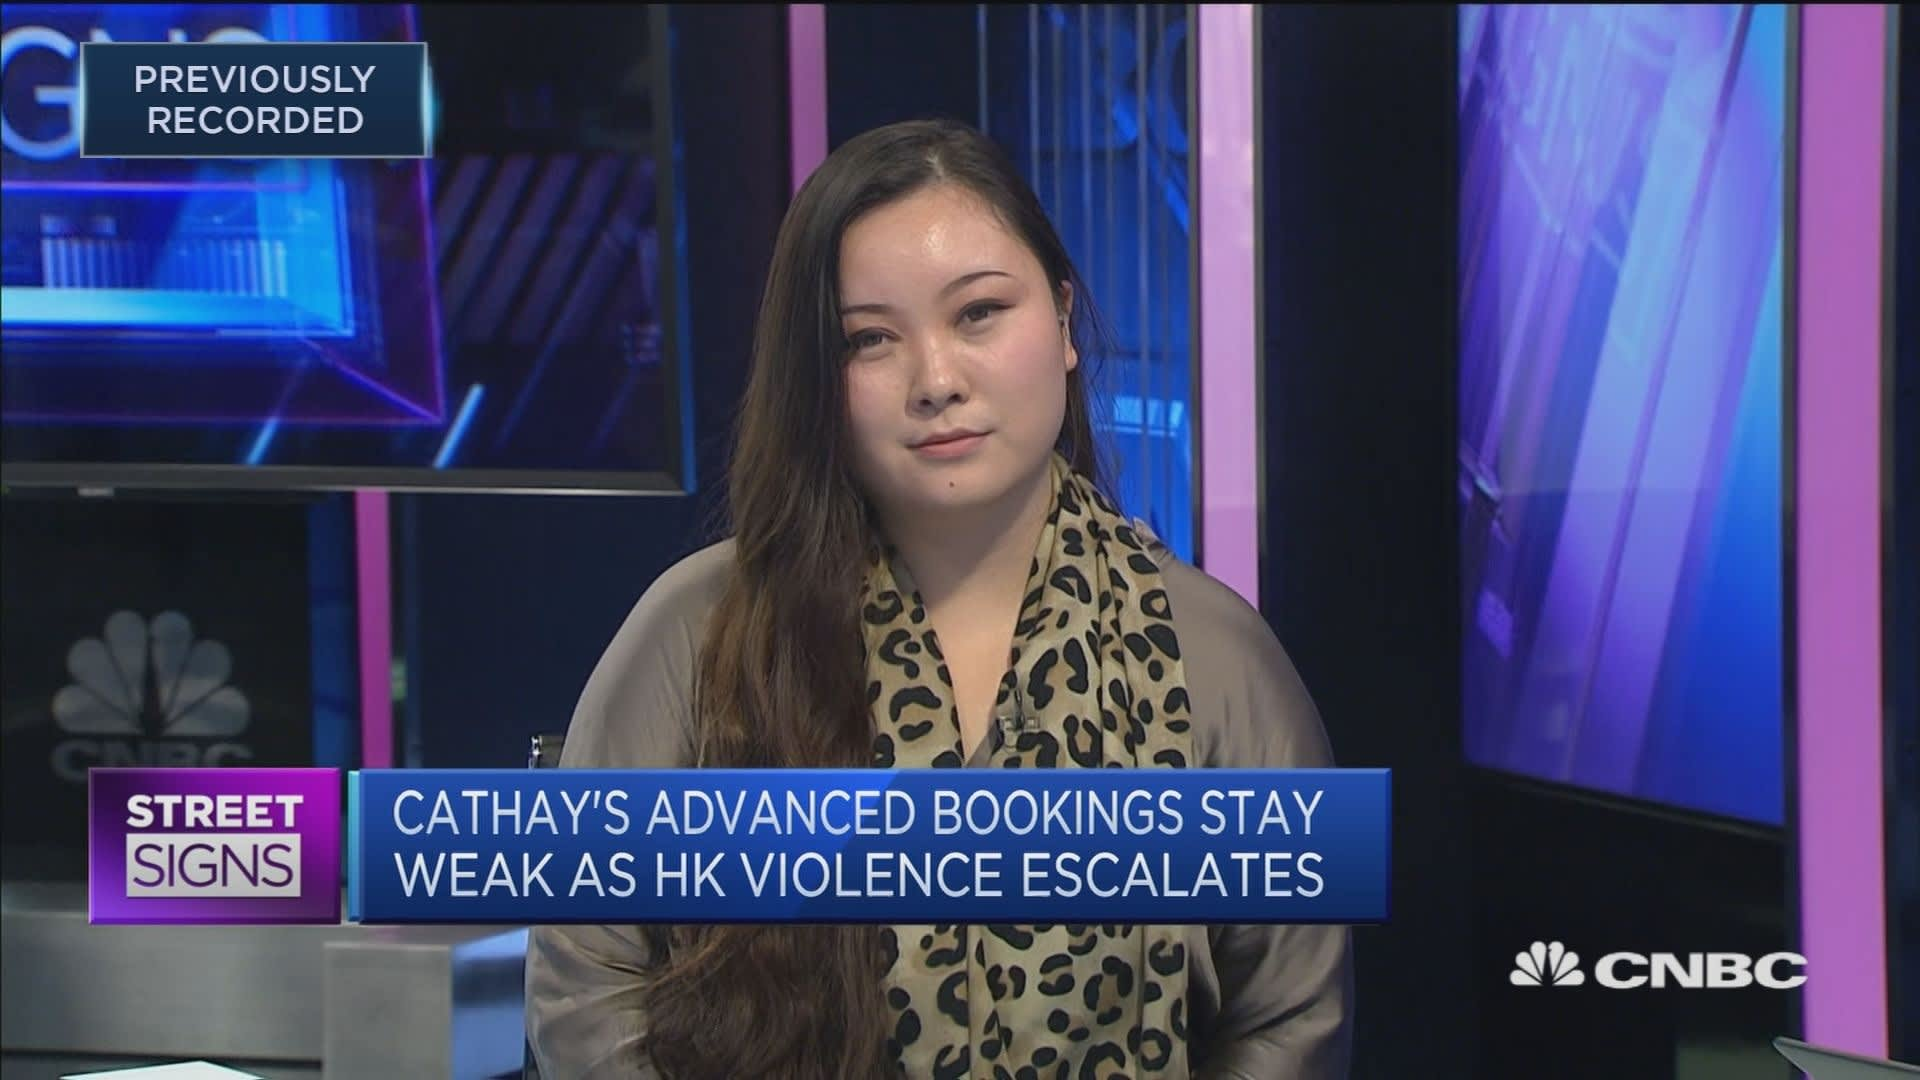 Analyst: Expect Cathay to make a 'minor loss' for 2H of 2019